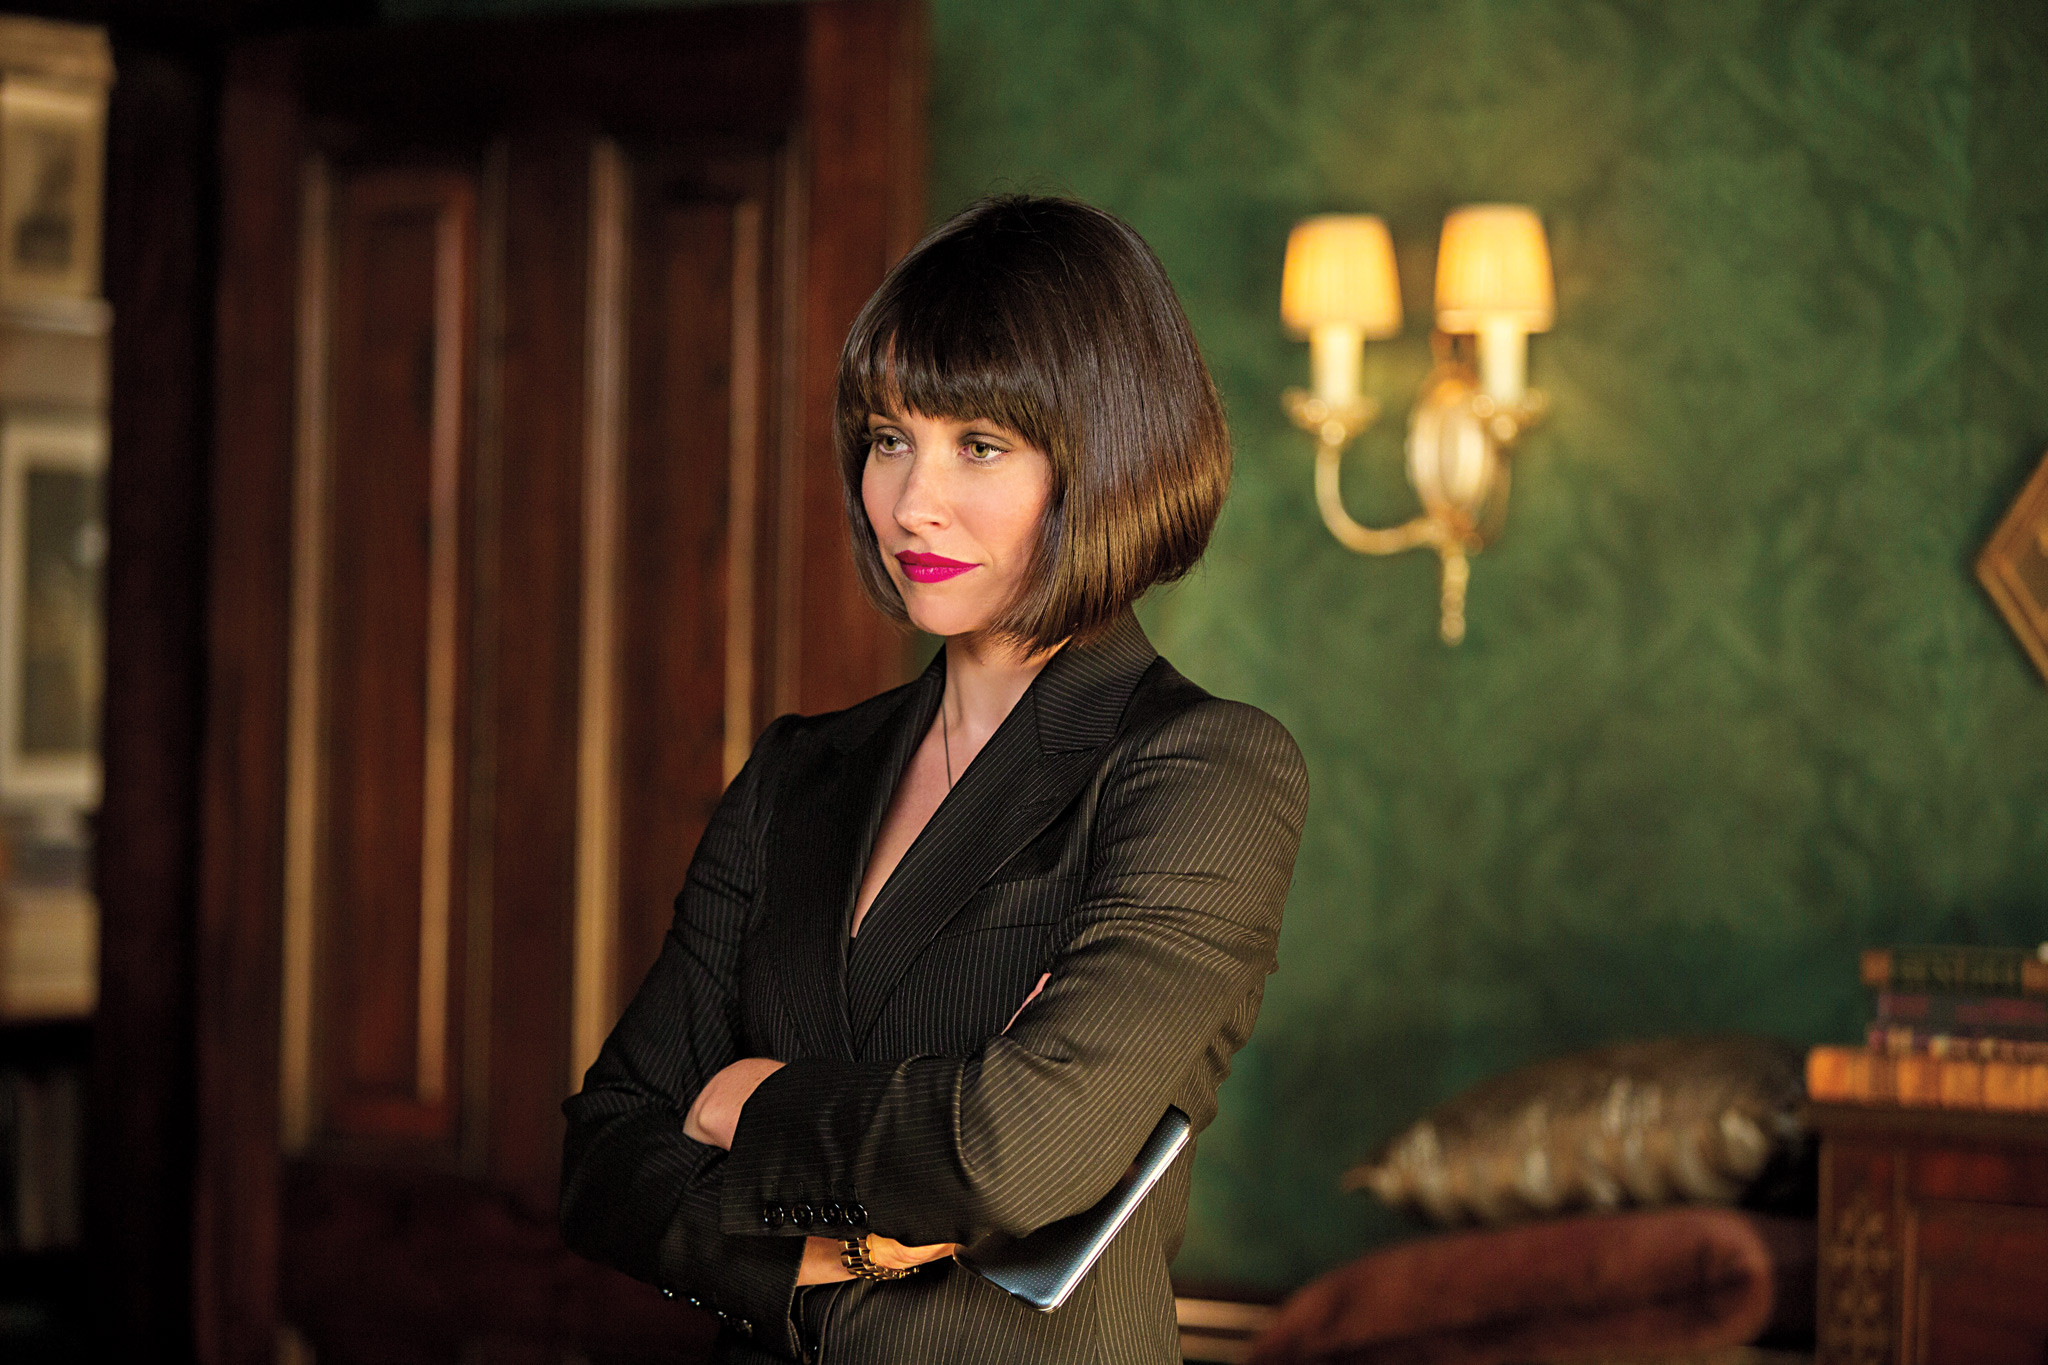 ant-man official hope van dyne